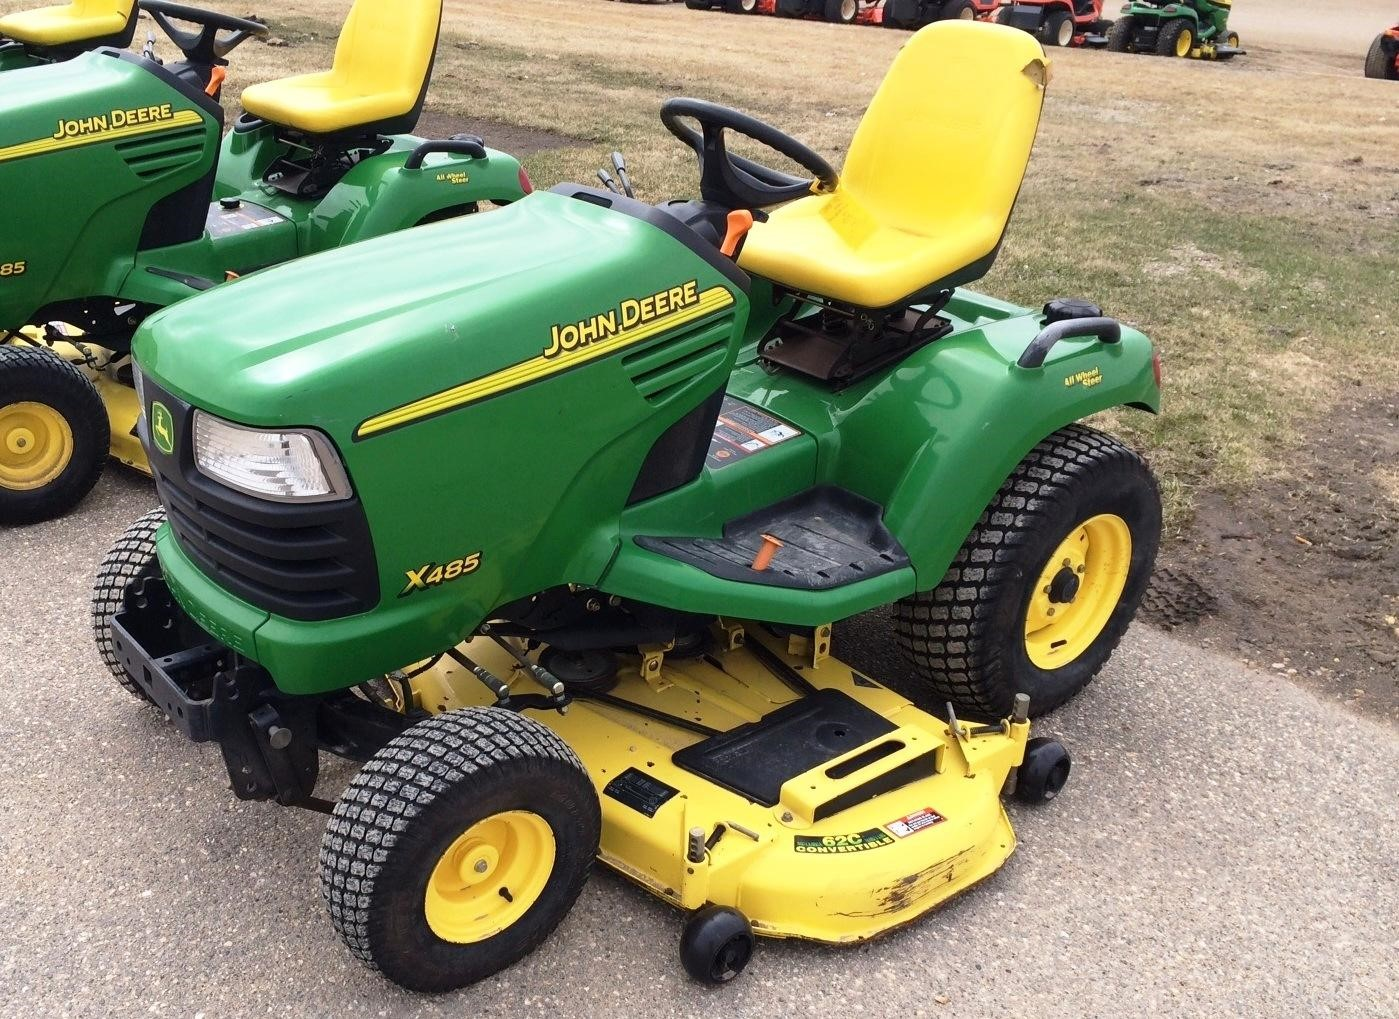 wisconsin ag connection john deere x485 riding lawn mowers for sale. Black Bedroom Furniture Sets. Home Design Ideas